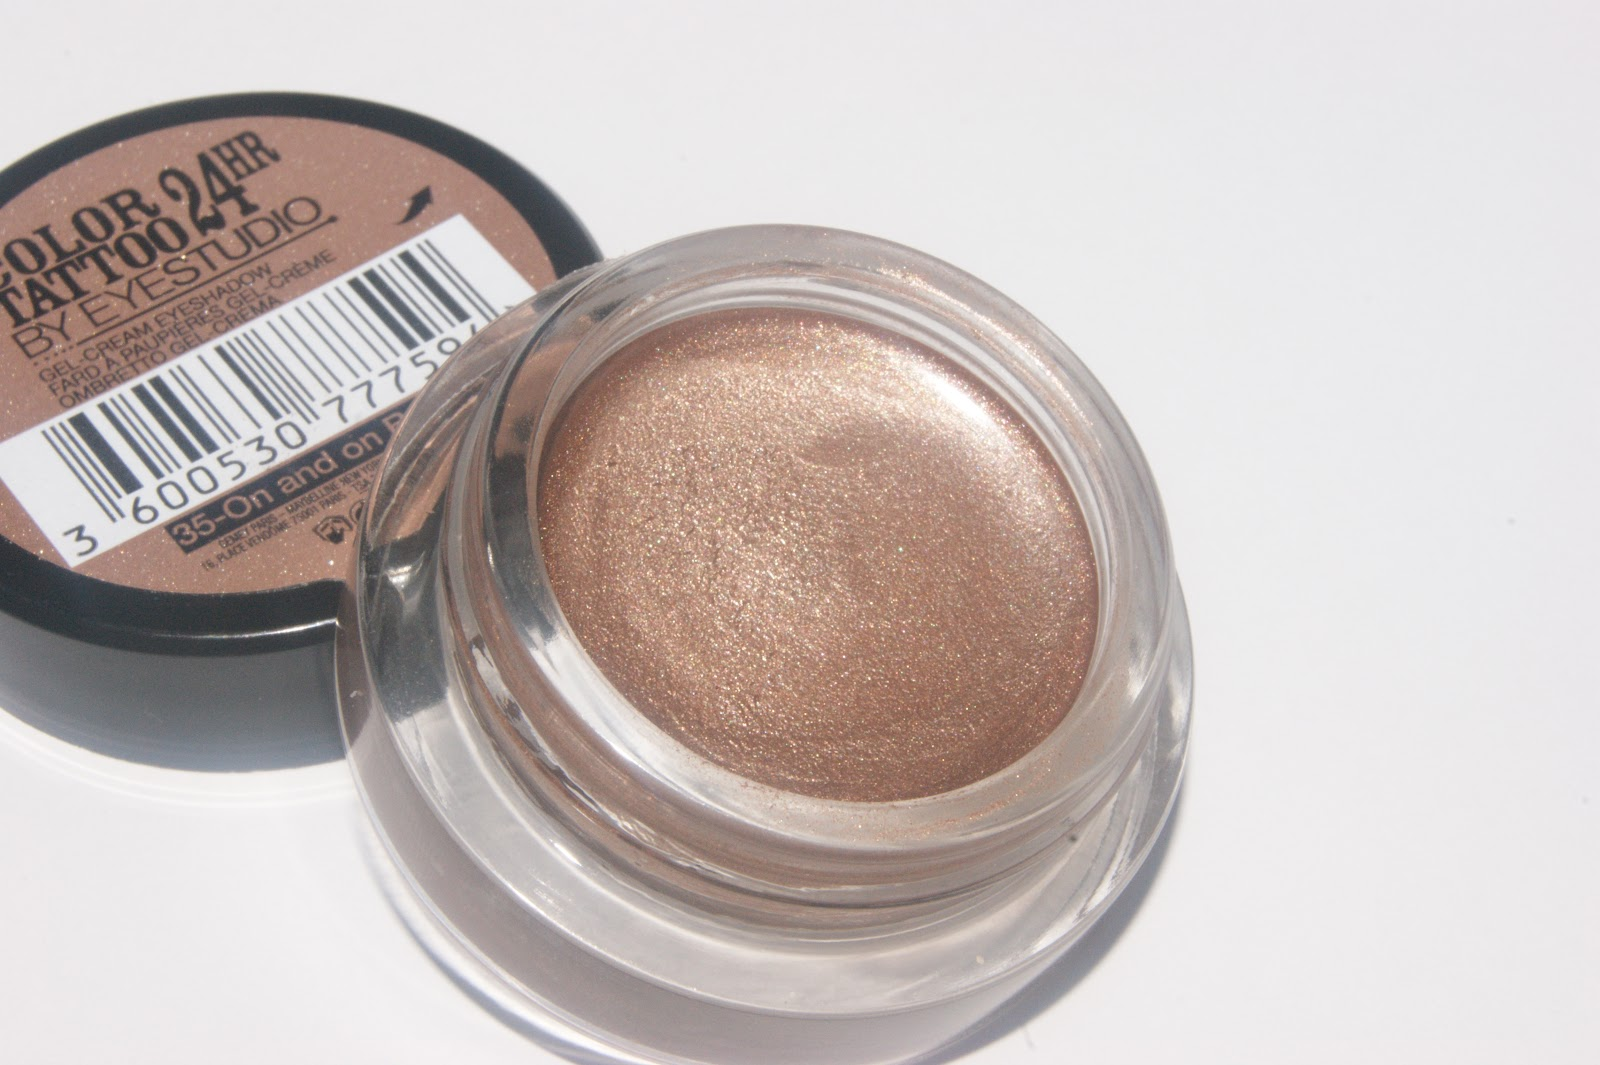 maybelline-color-tattoo-24hr-eyeshadow-on-and-on-bronze-review-006